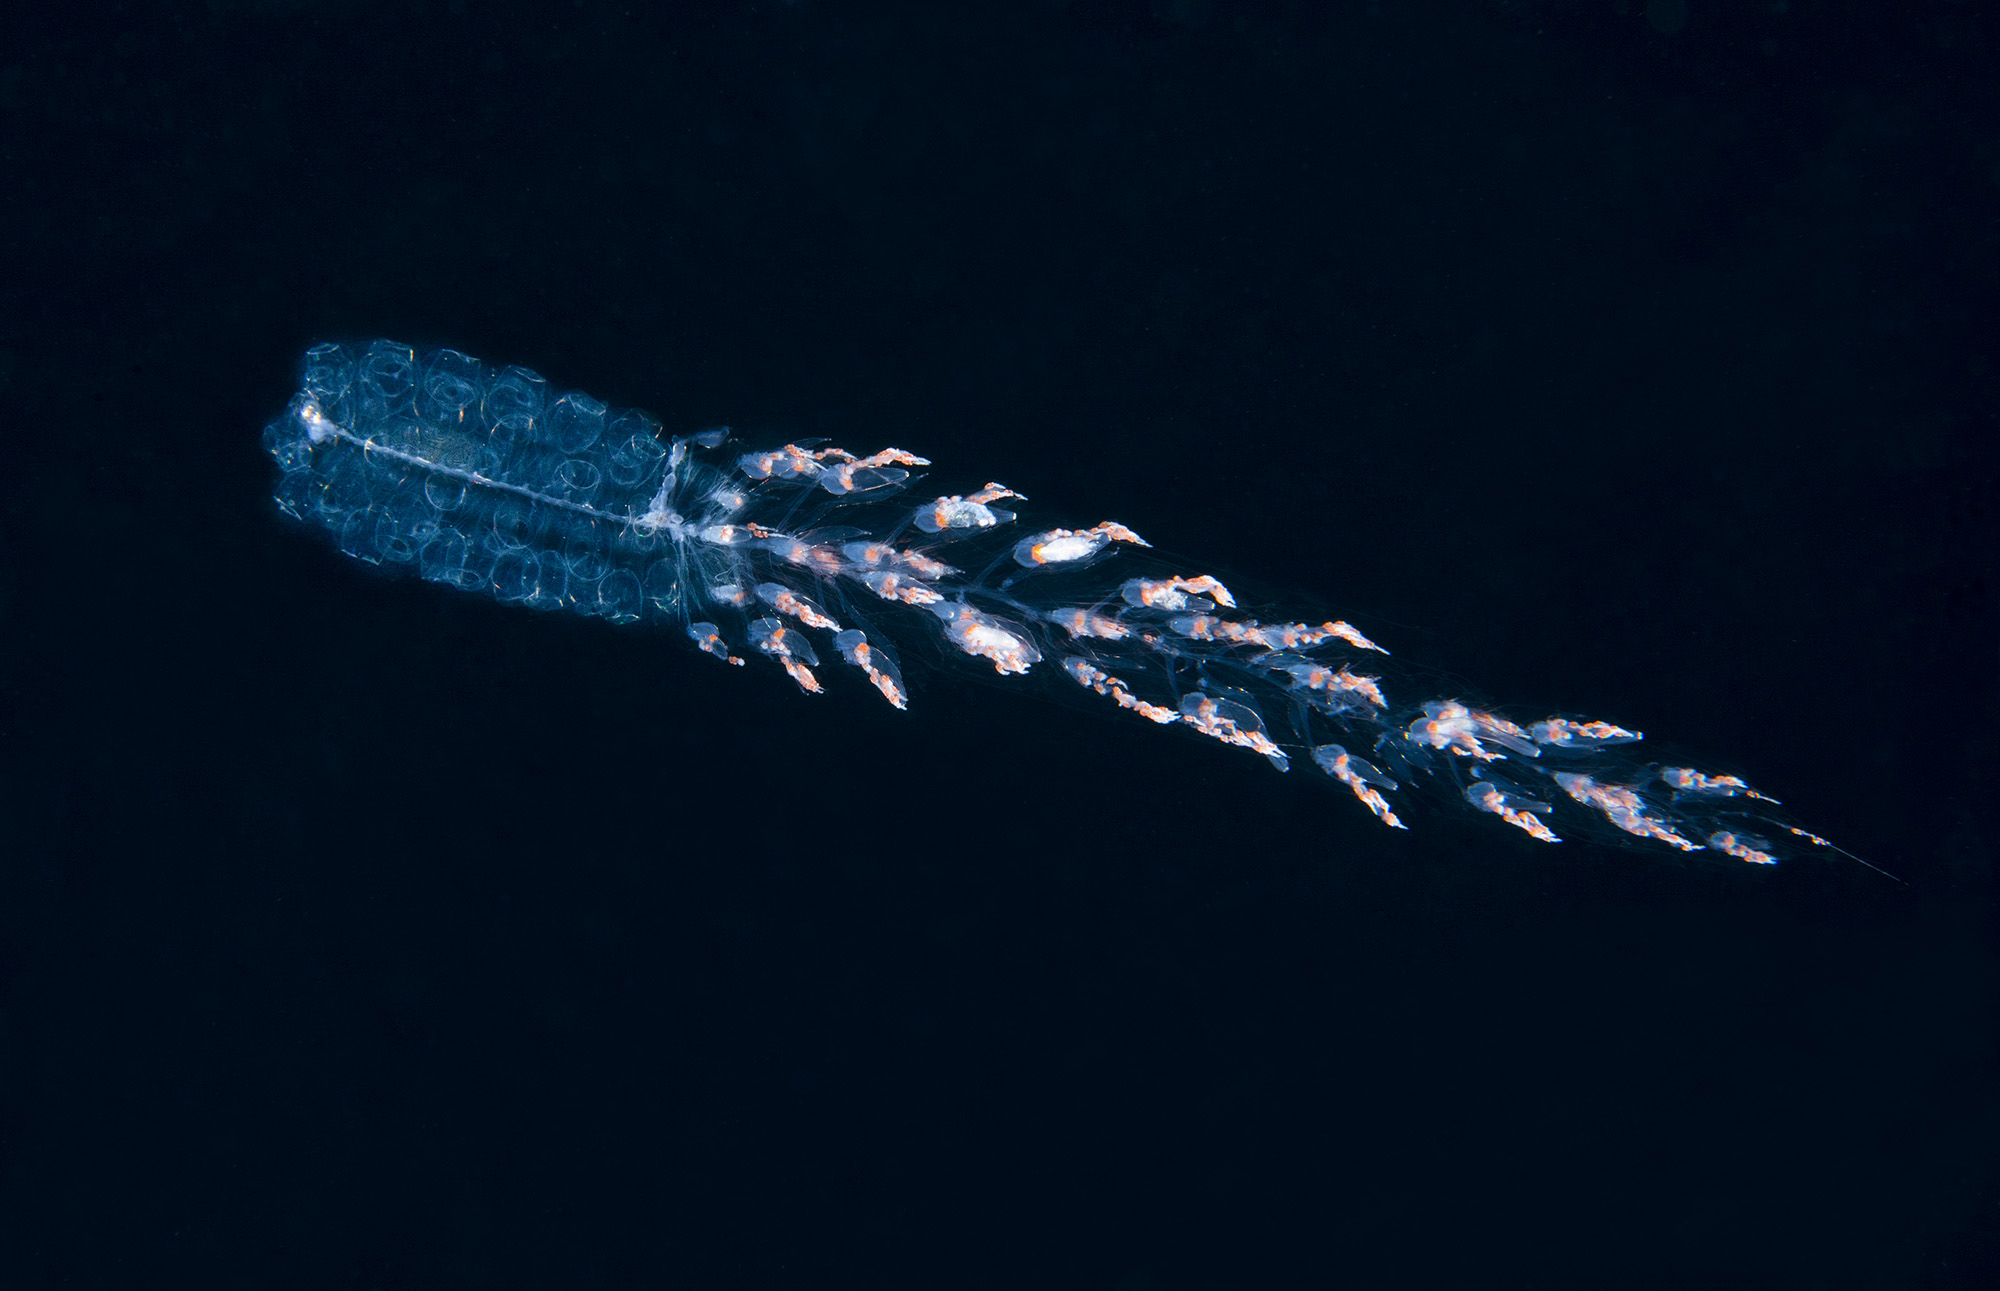 Siphonophore Hunting credit: richard barnden / coral reef image bank